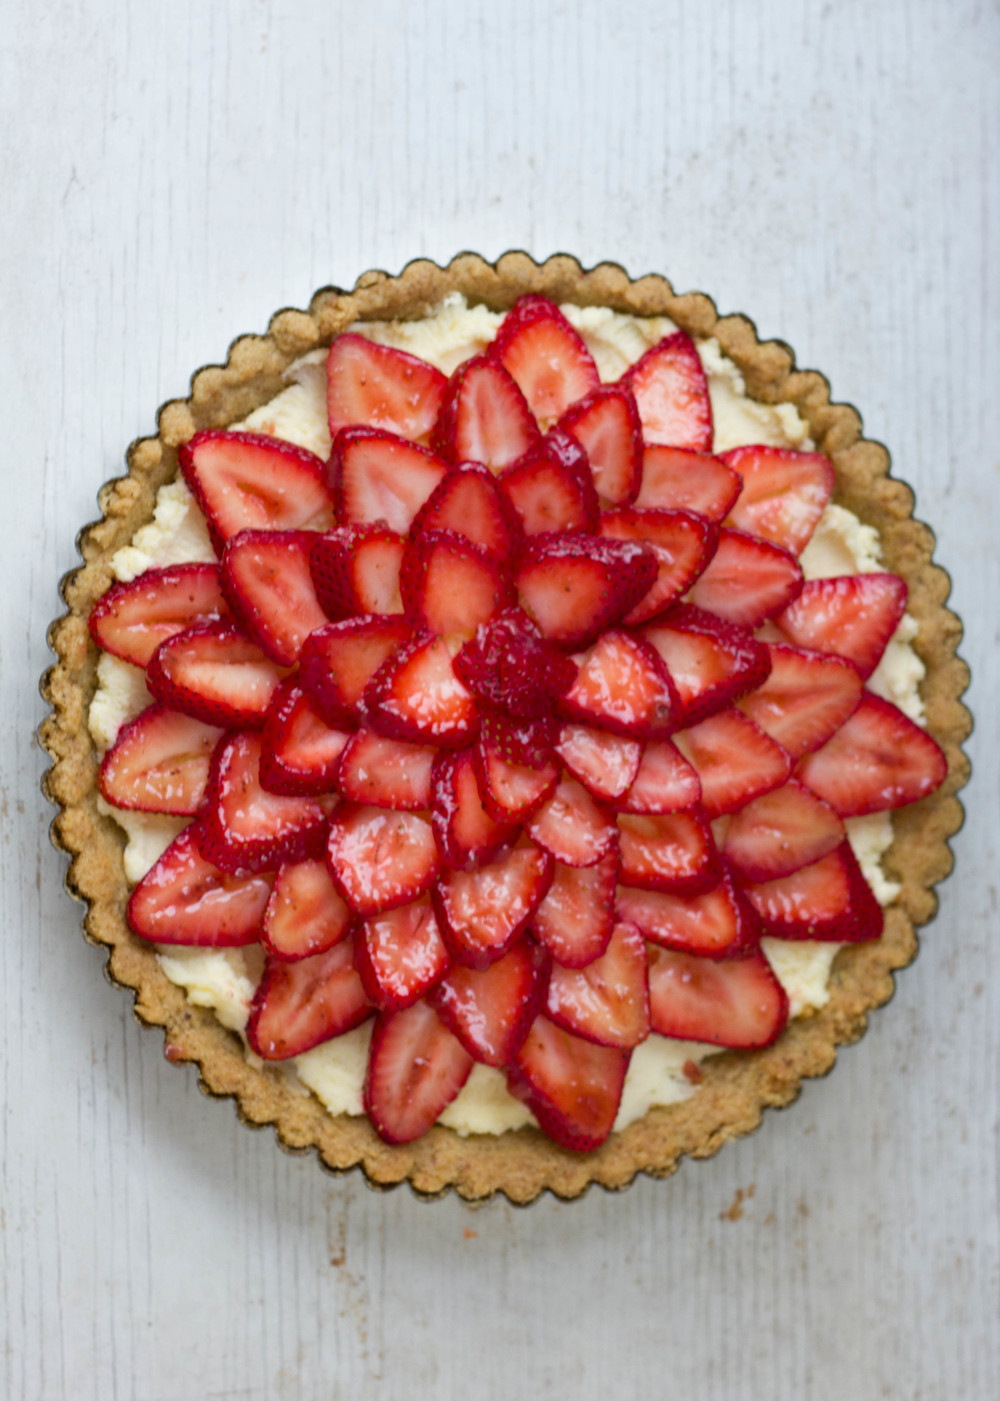 Strawberry Mascarpone Tart for #BrunchWeek